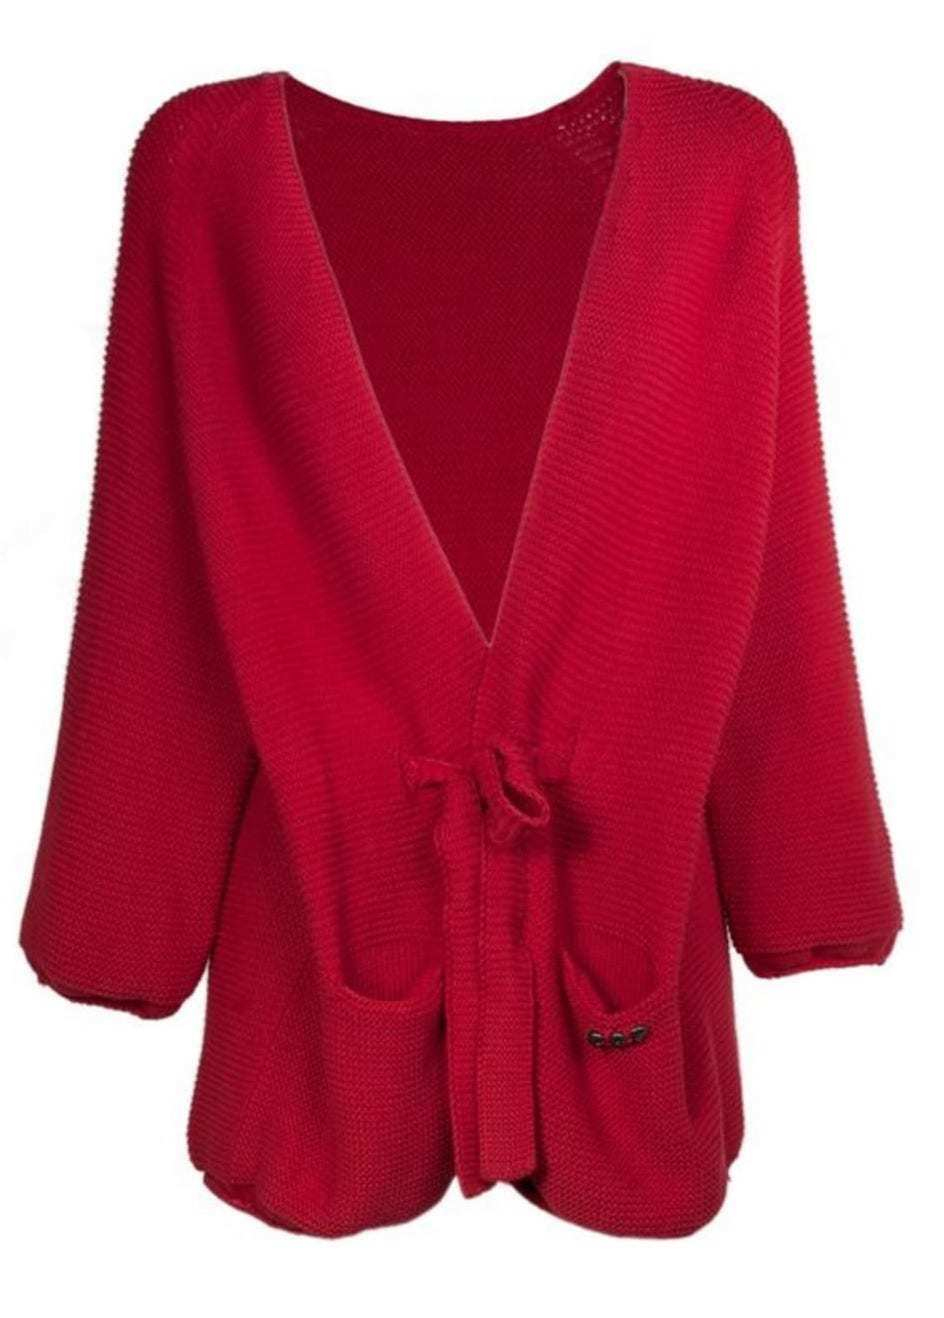 Cop copine beethoven gilet knitted 100%cotton red open cardigan Made in Portugal